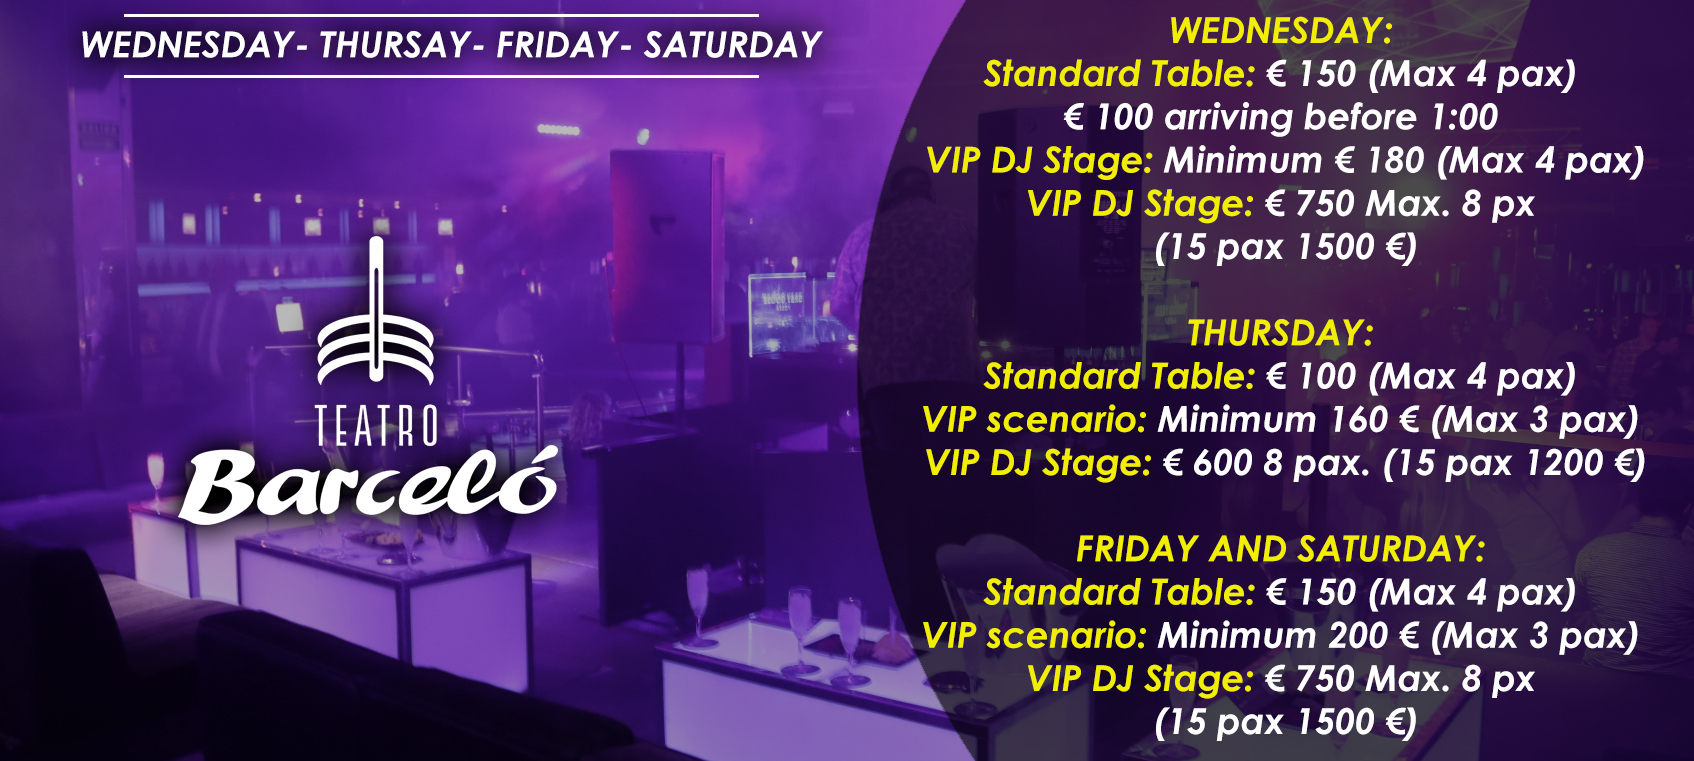 prices tables vip disco theater barcelo